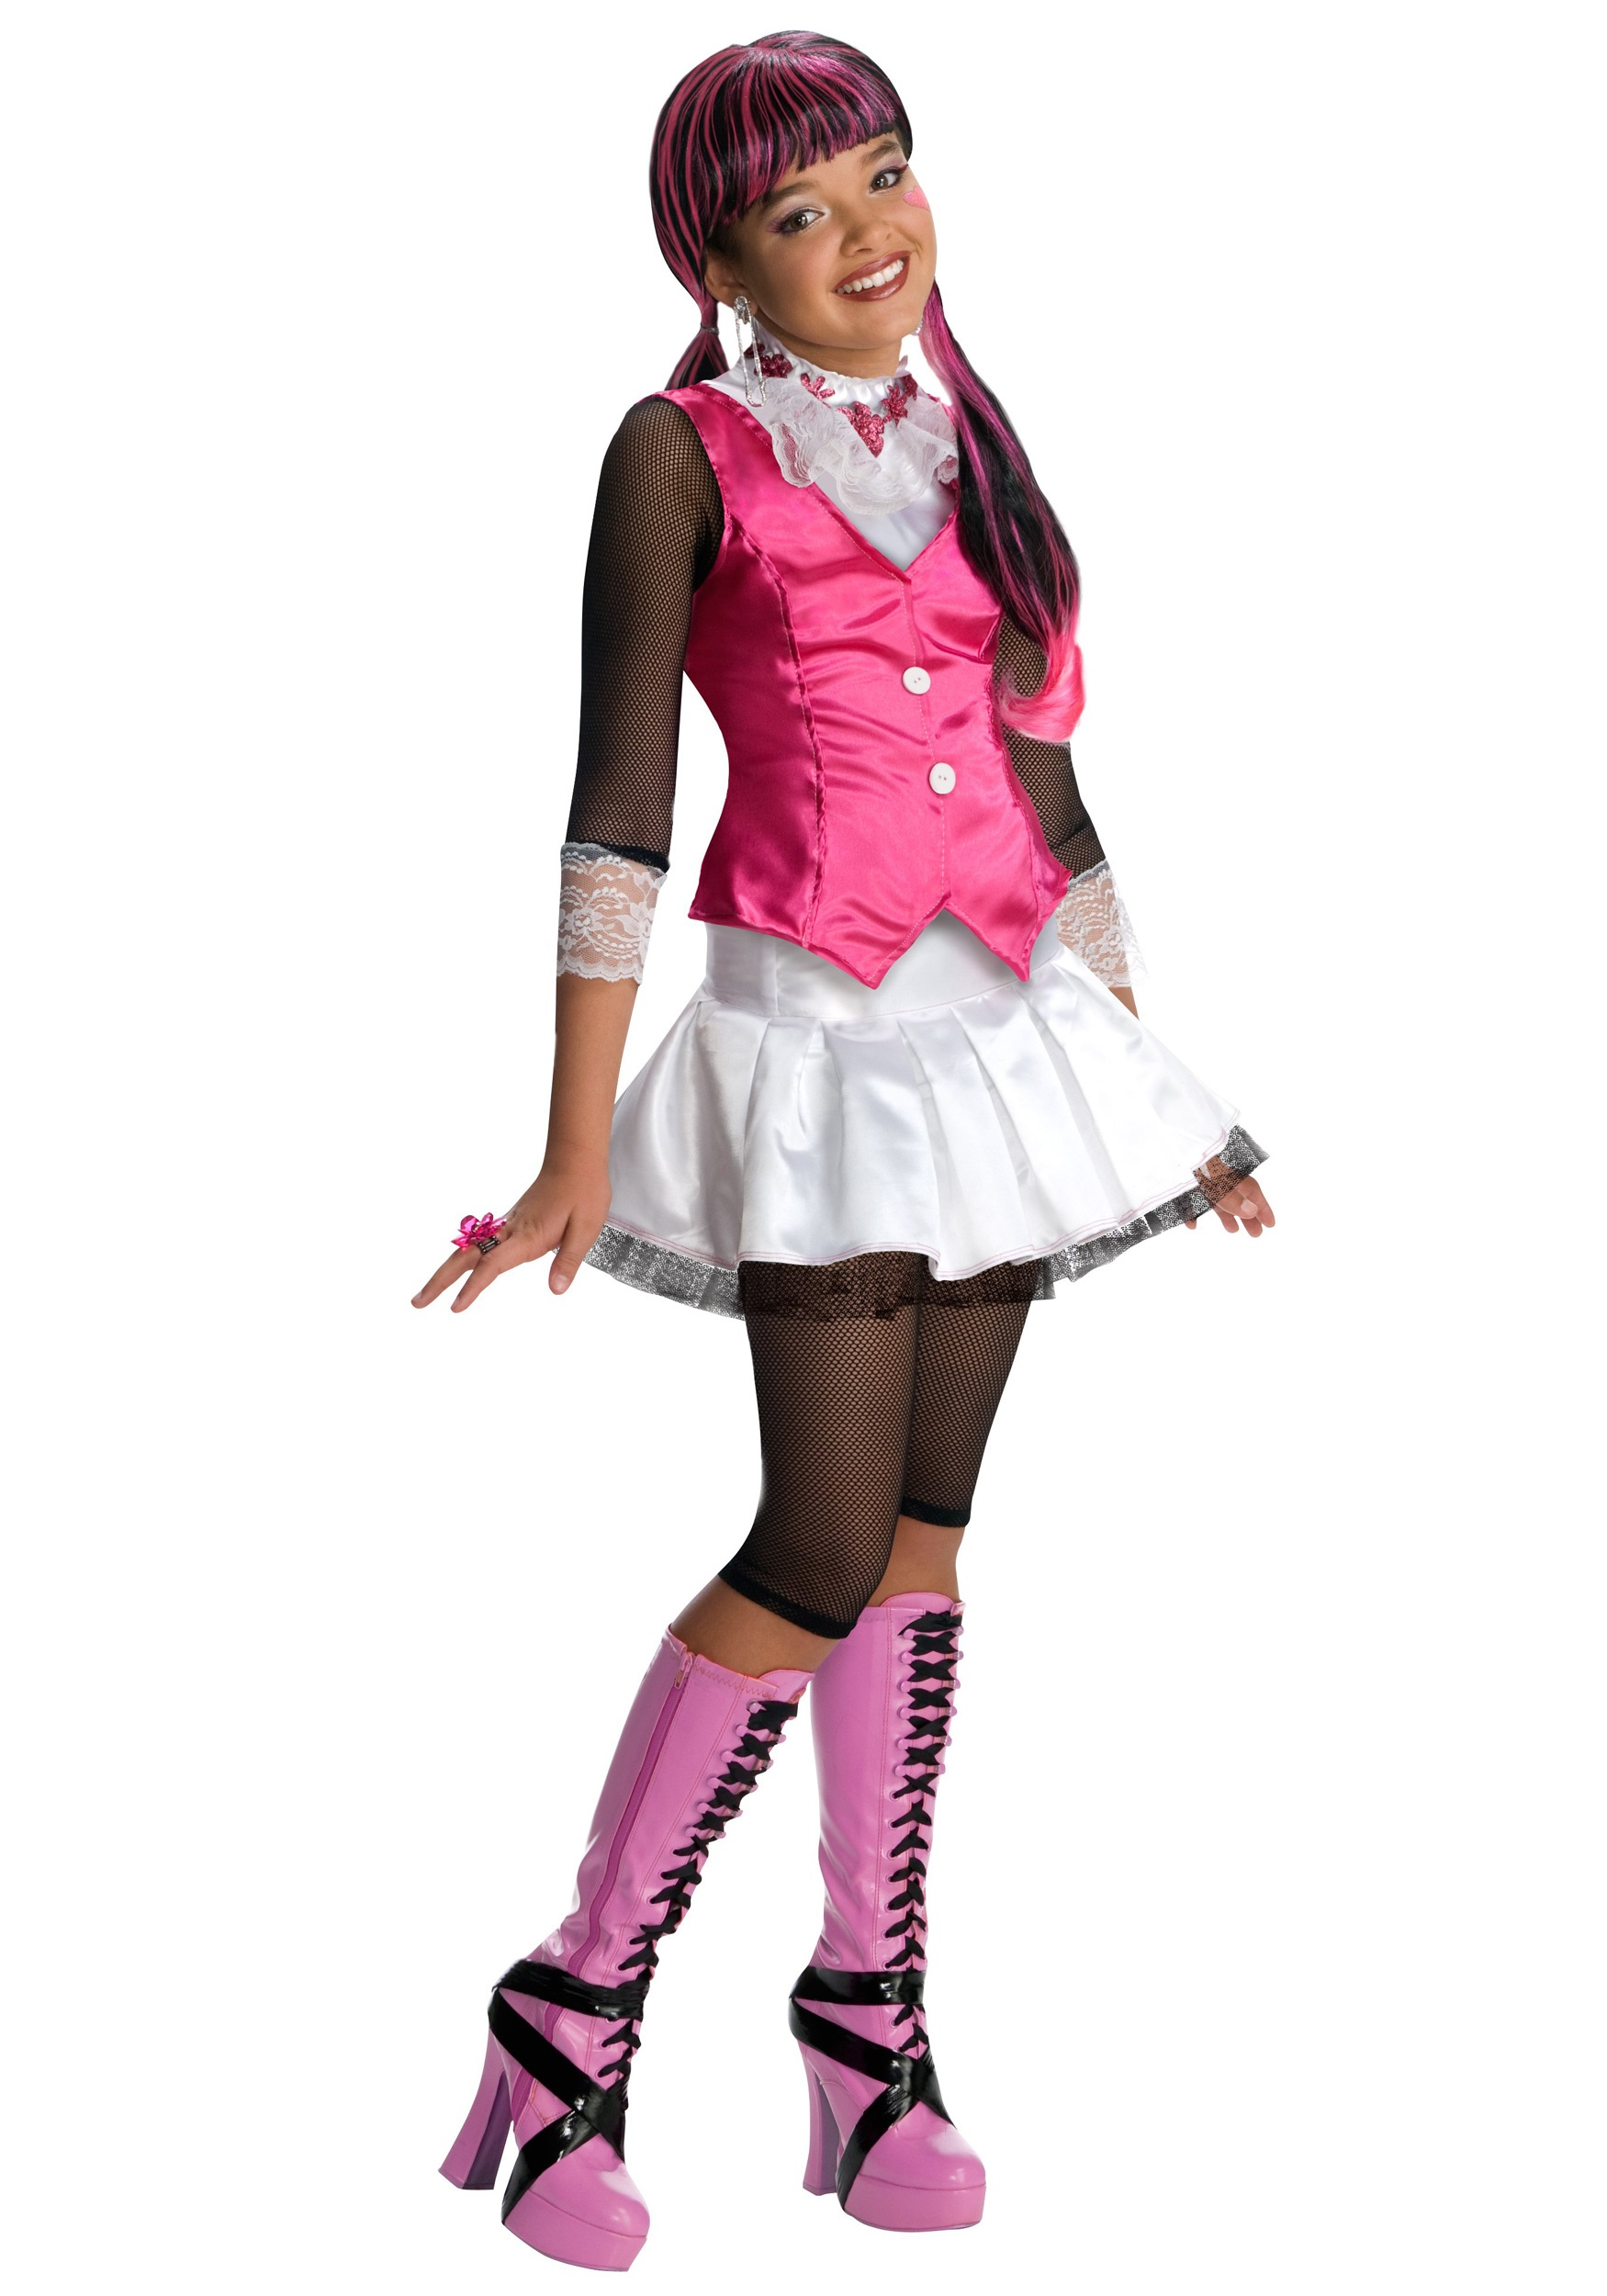 sc 1 st  Halloween Costumes : monster high vampire costume  - Germanpascual.Com